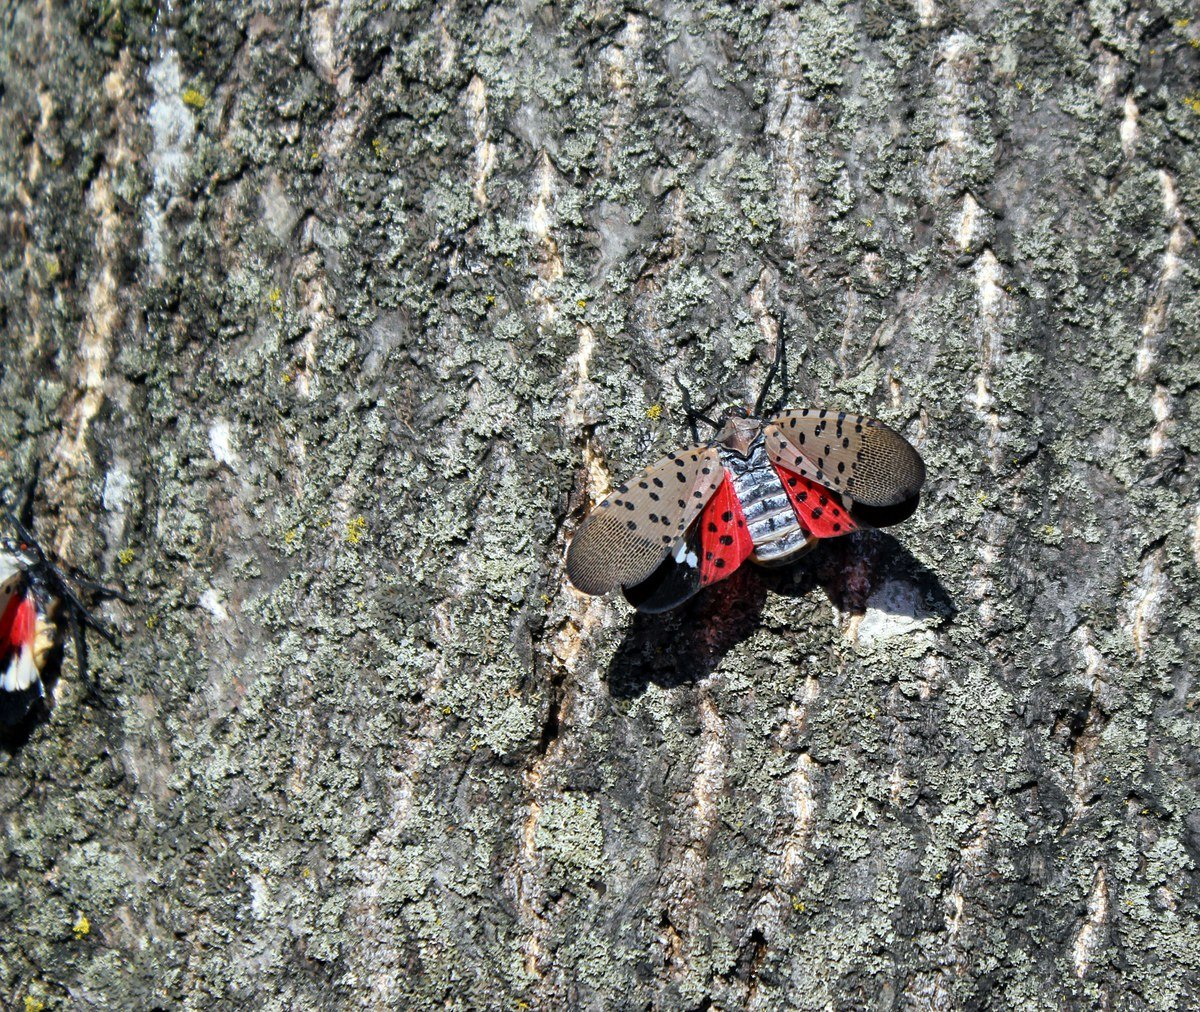 When disturbed, the adult Spotted Lanternfly may lift the top wings to expose black, white and red lower wings. They are easy to spot! The Spotted Lanternfly is also known by the common name Lanternmoth. It is neither a fly nor a moth – but a member of the planthopper family.Photo: Nancy Bosold, Horticulture Educator, Penn State Extension, Berks Co.